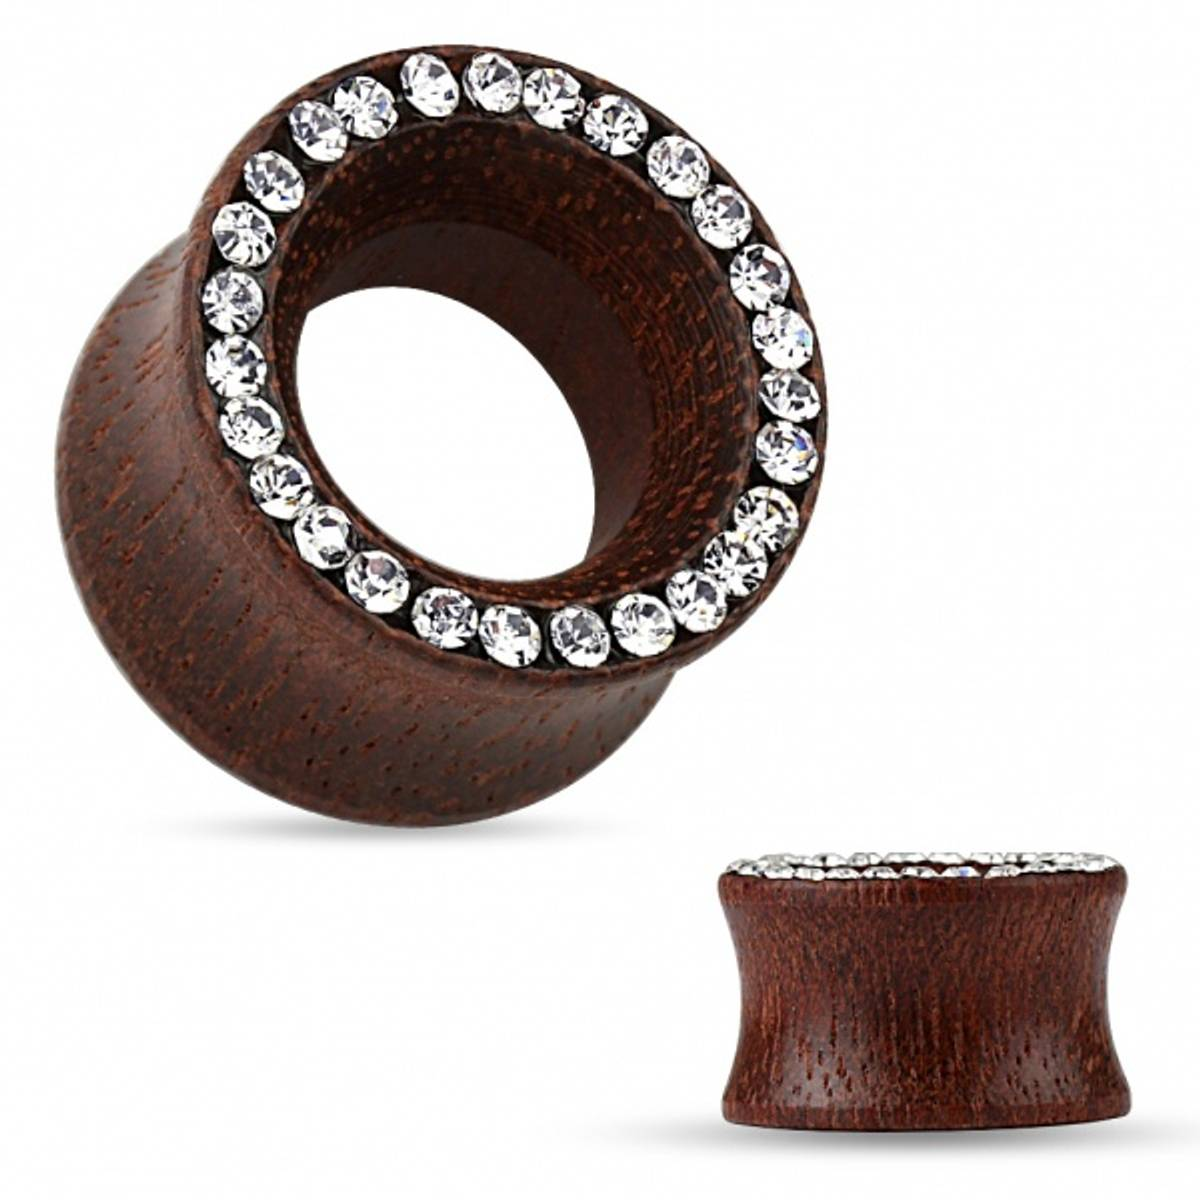 Rose Wood Double Flared Tunnel with Crystal Paved Rim